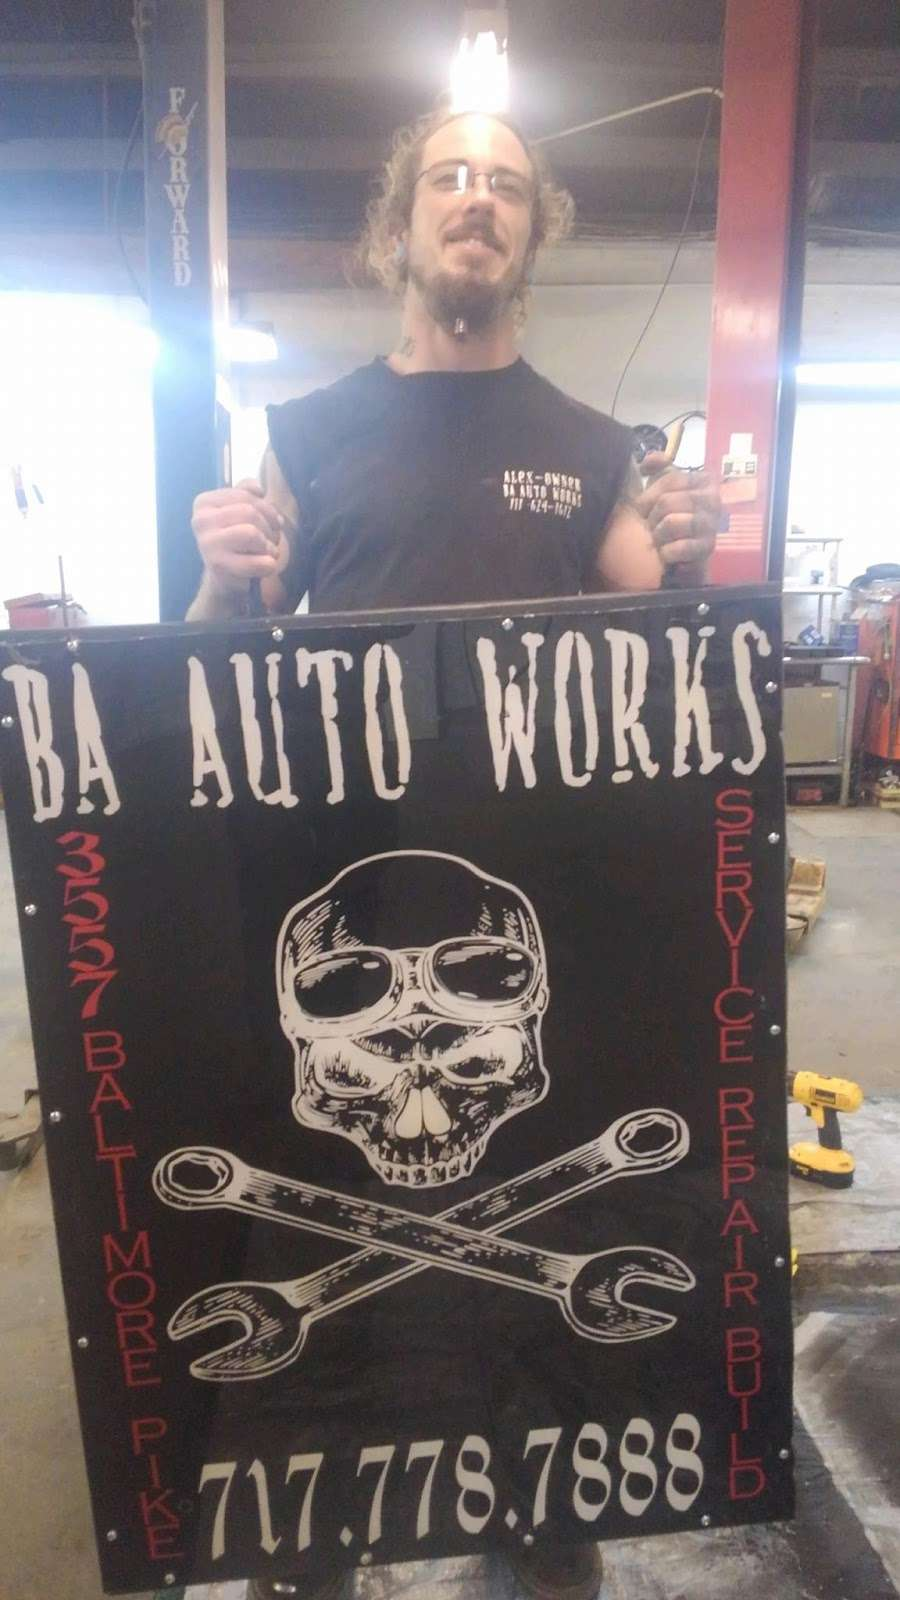 BA Auto Works - car repair  | Photo 10 of 10 | Address: 3557 Baltimore Pike, Littlestown, PA 17340, USA | Phone: (717) 778-7888